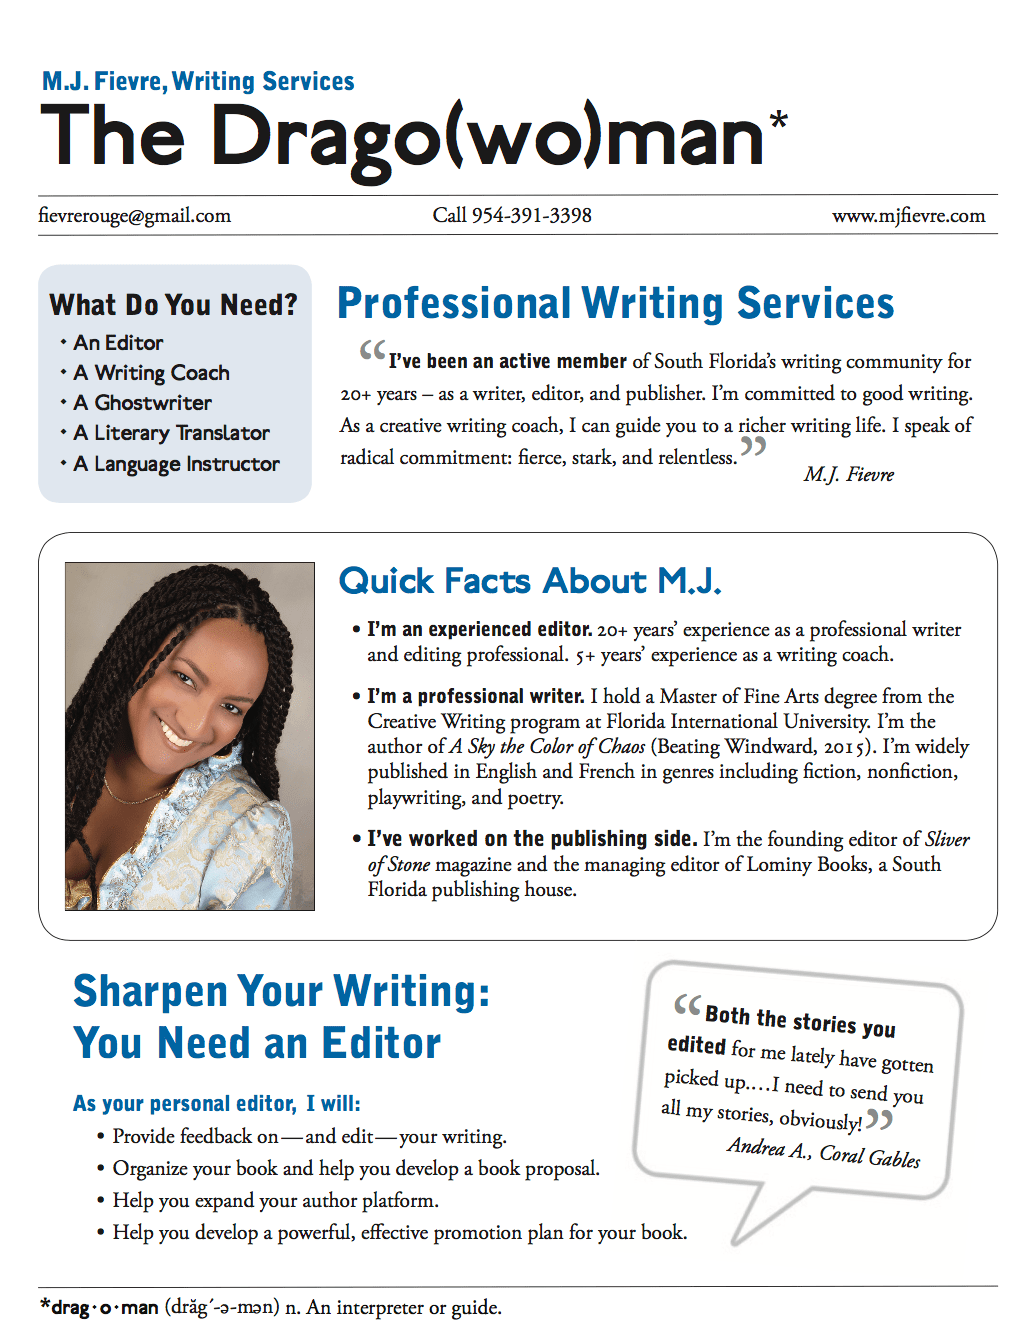 professional writing services inc Expert resumes, linkedin profiles and recruiter contacts, guaranteed discover the ecs difference, and shorten your job search the ecs team of experts is different: we quote exact prices in writing, guarantee results, keep our promises, provide basic edits free of charge, and stick with you throughout the entire process to ensure your full.